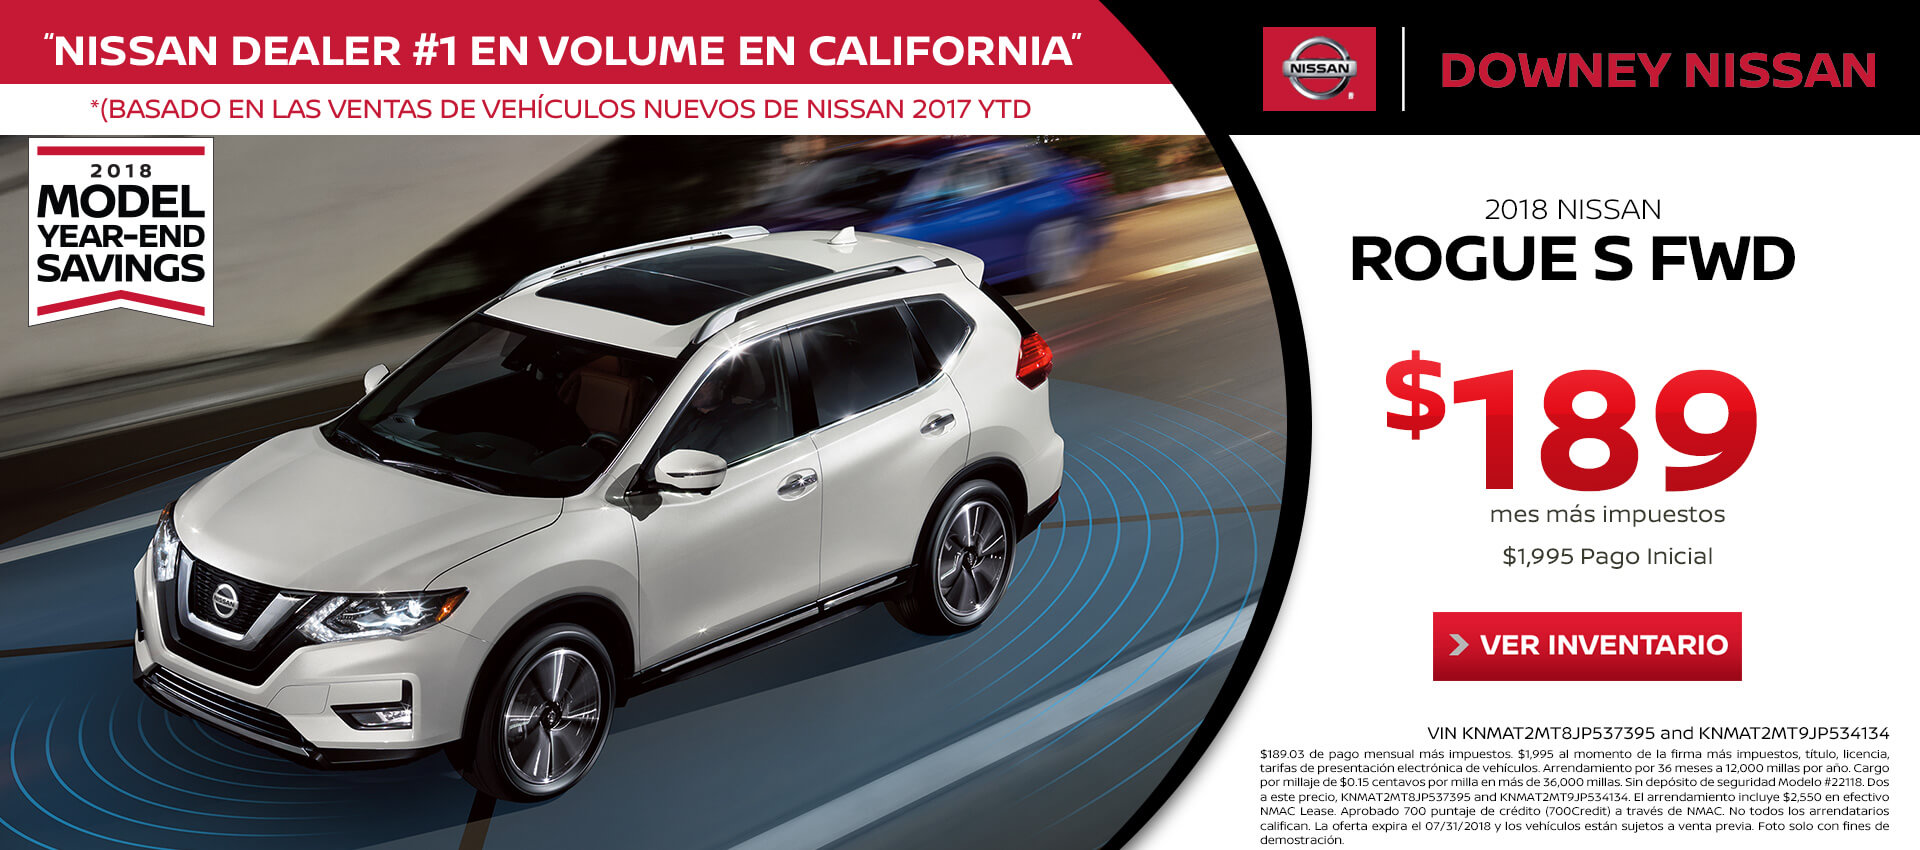 2018 Rogue - Lease for $189